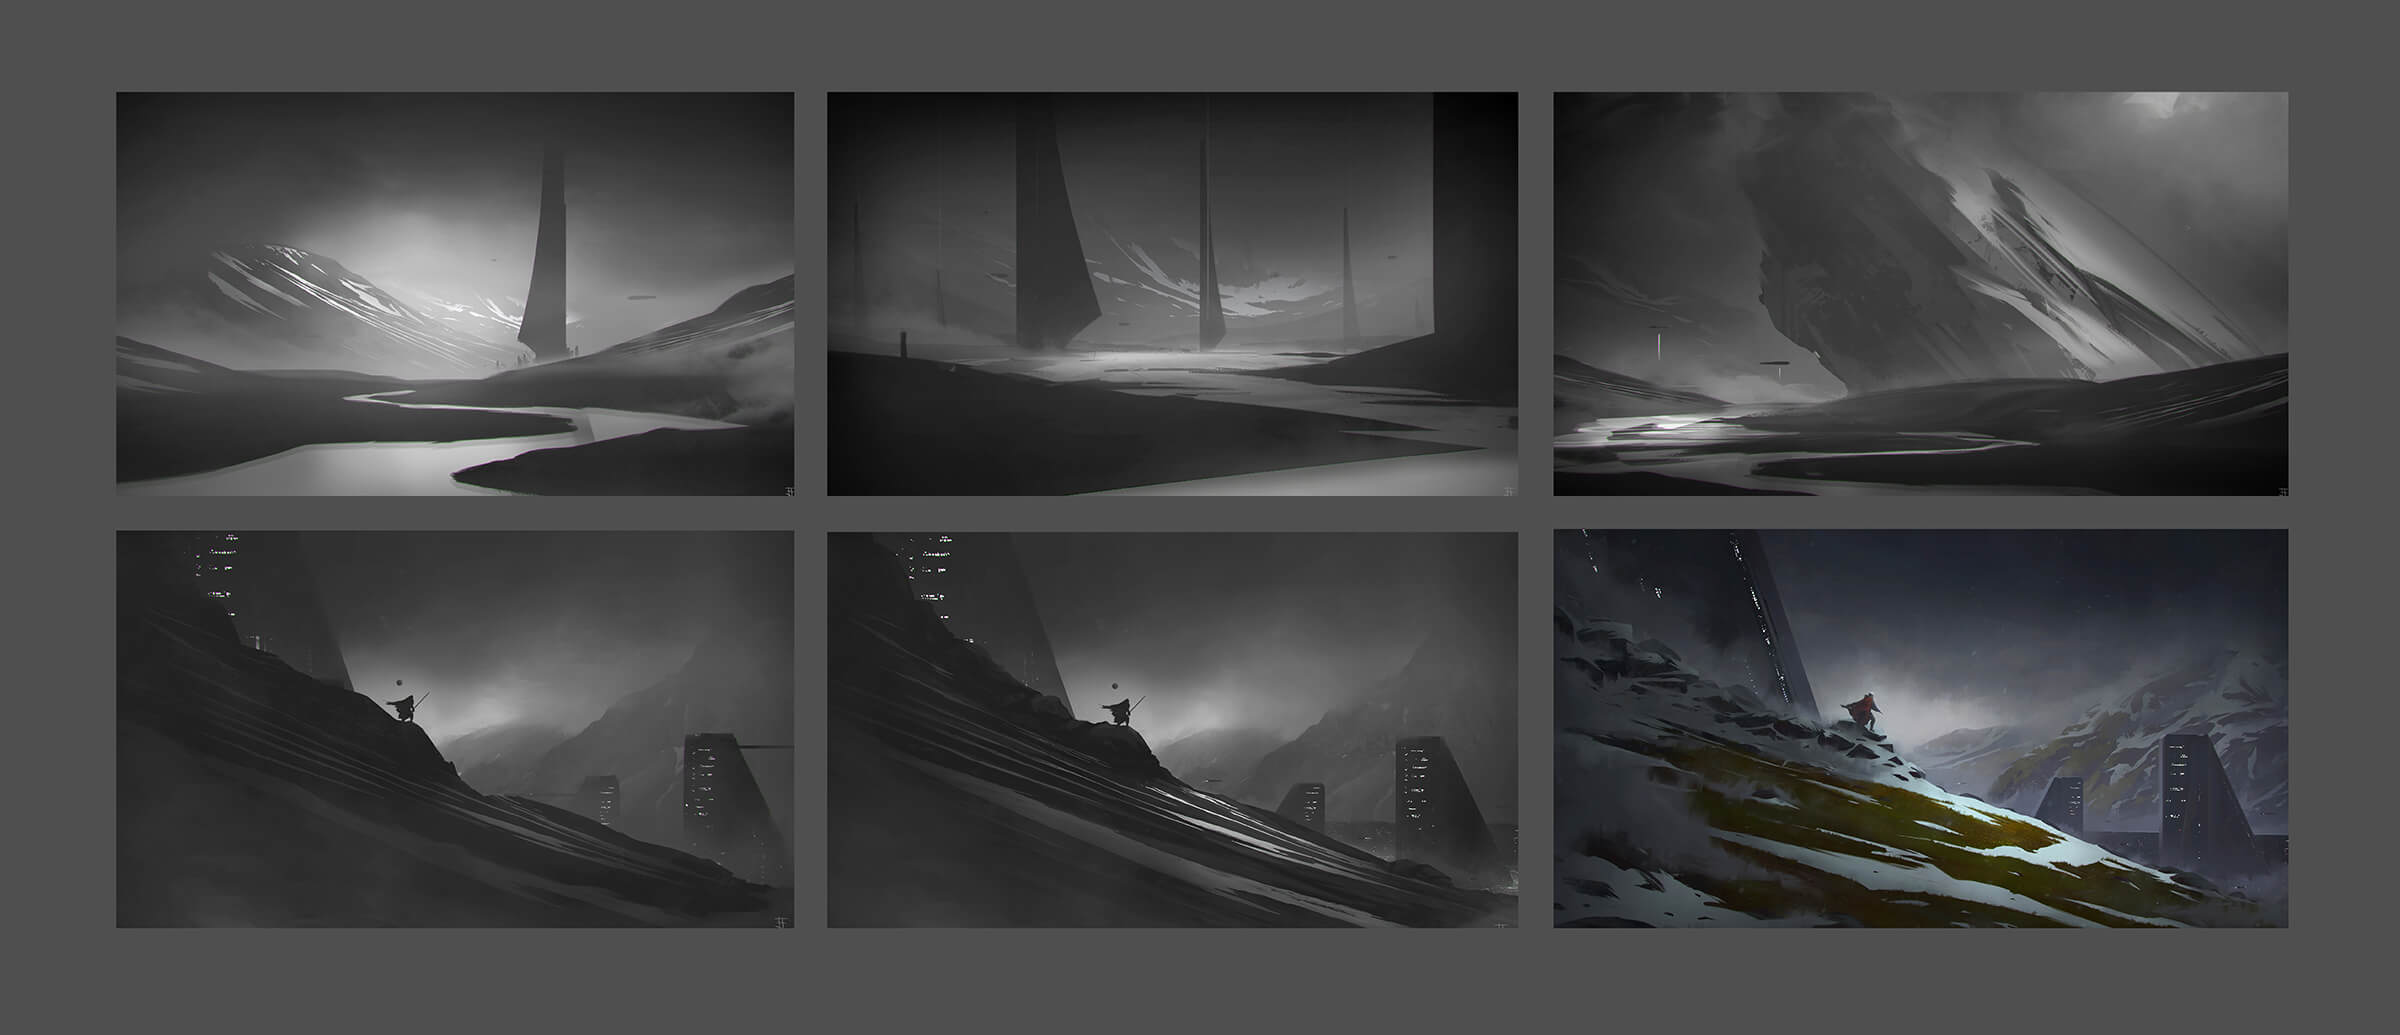 6 digital paintings of dark landscapes, the last of which features green grass, snow and lighted buildings